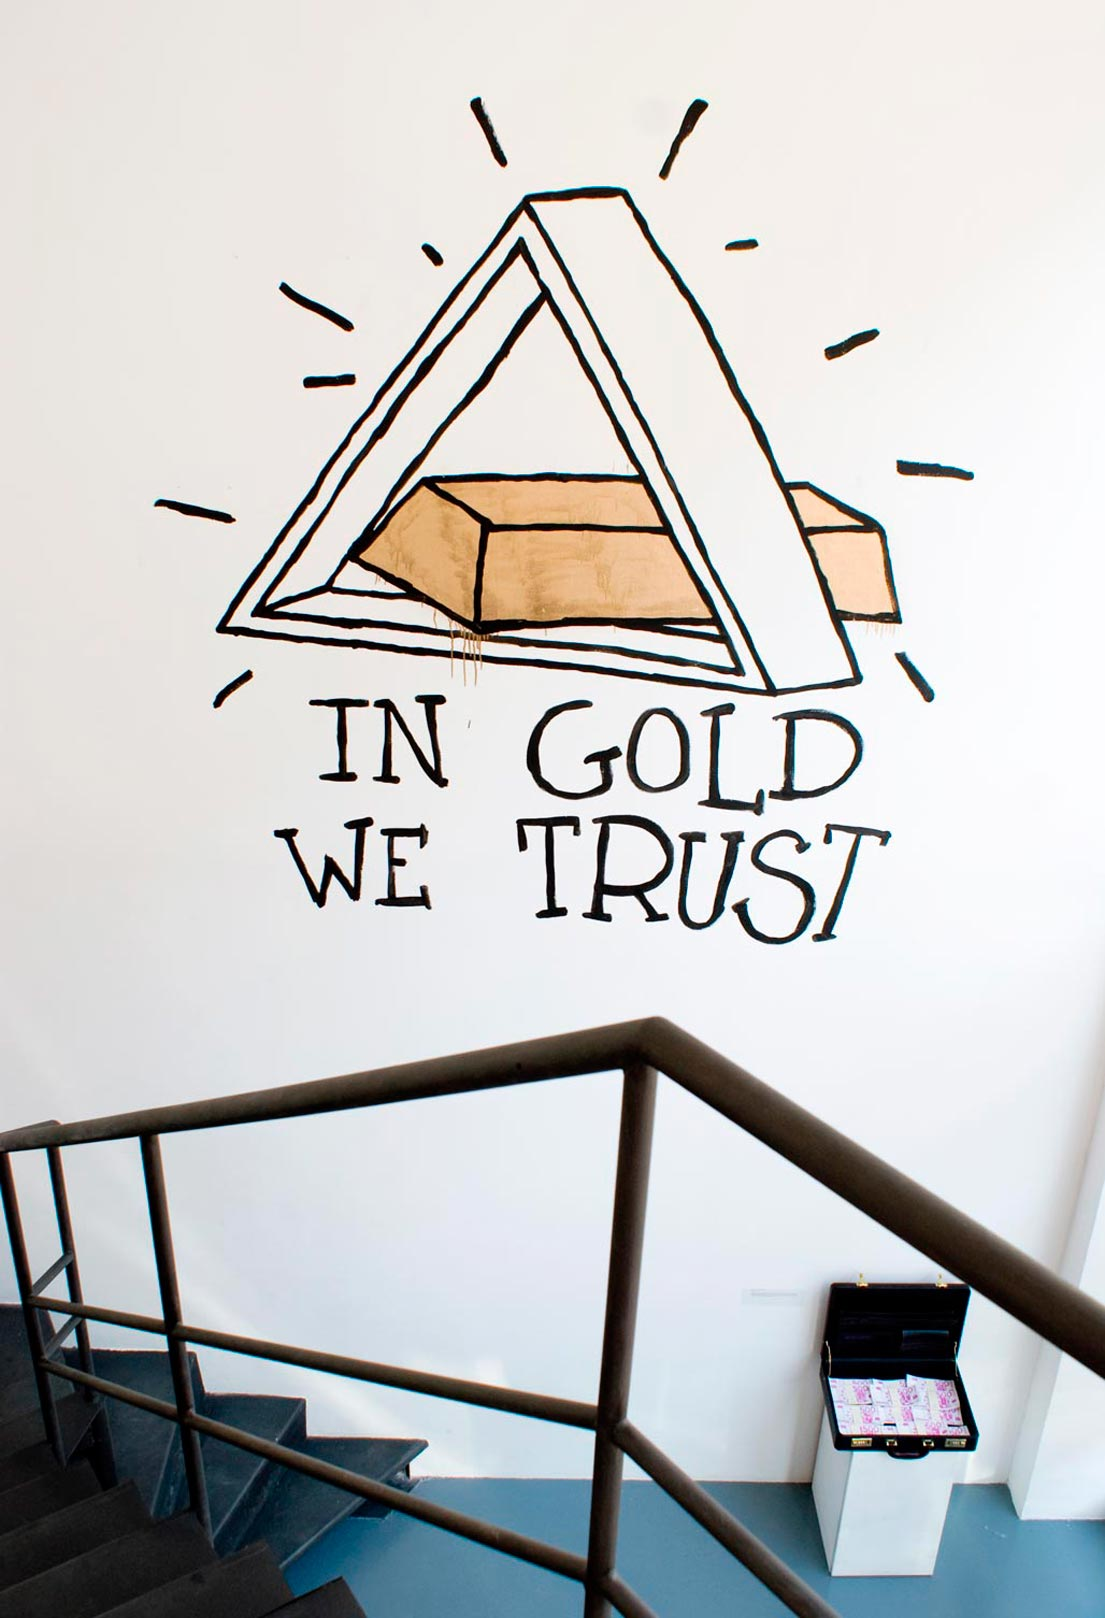 julio-falaganin-gold-we-trust-1